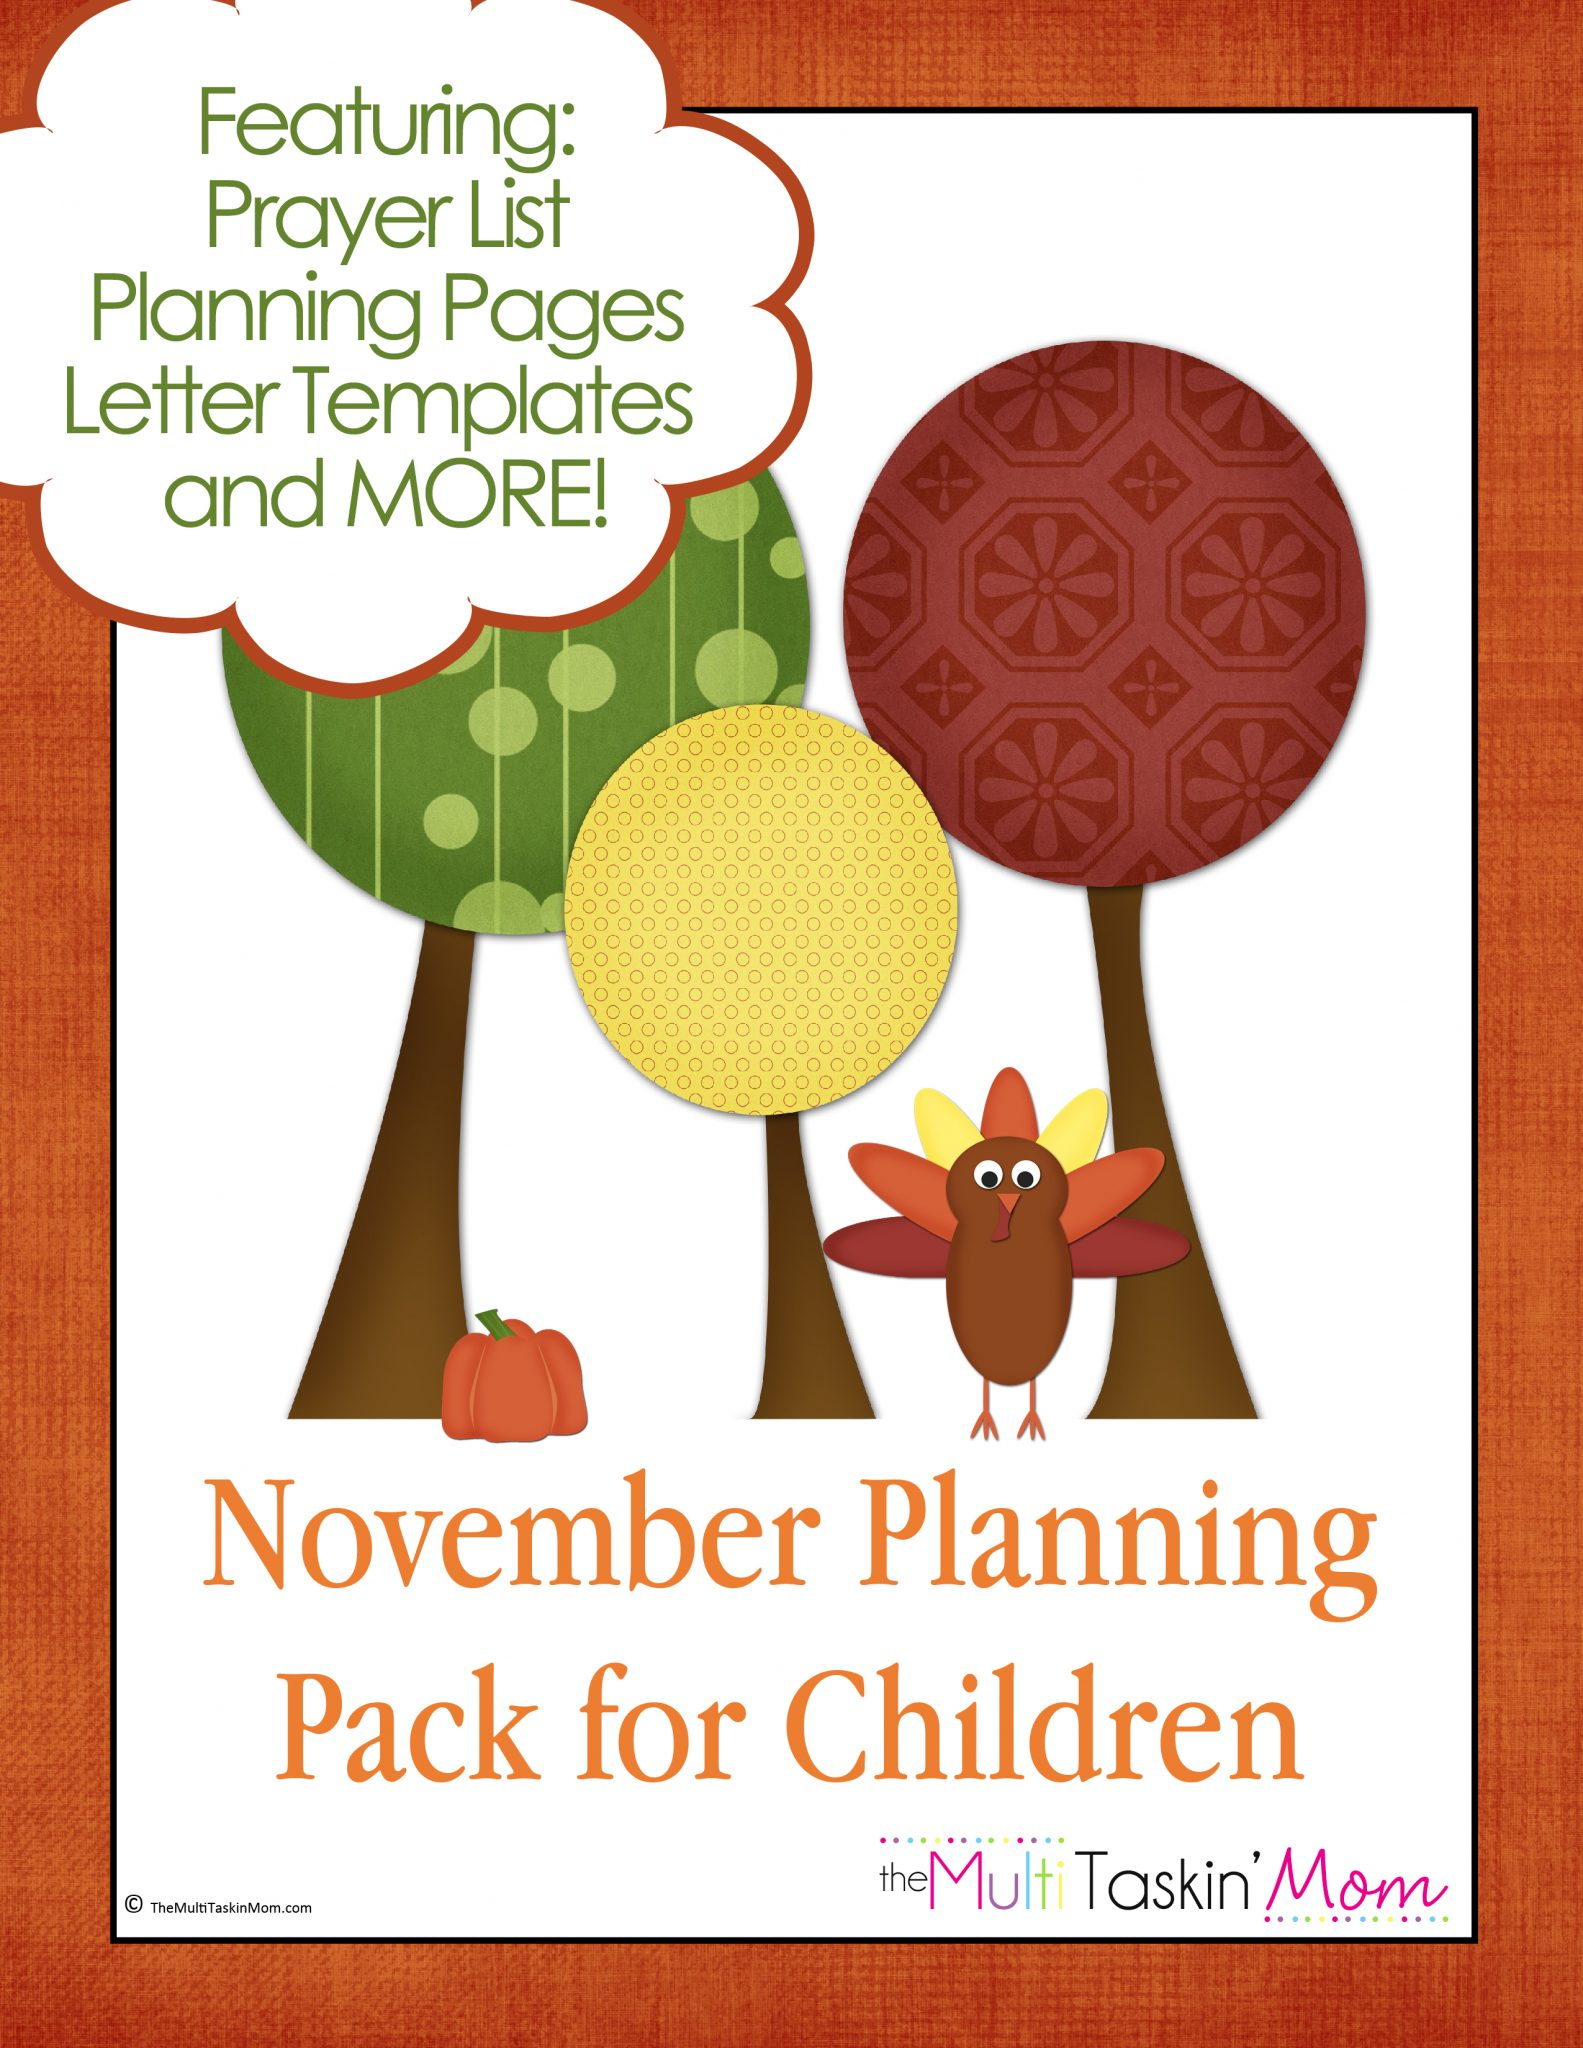 November Planning Pack for Children